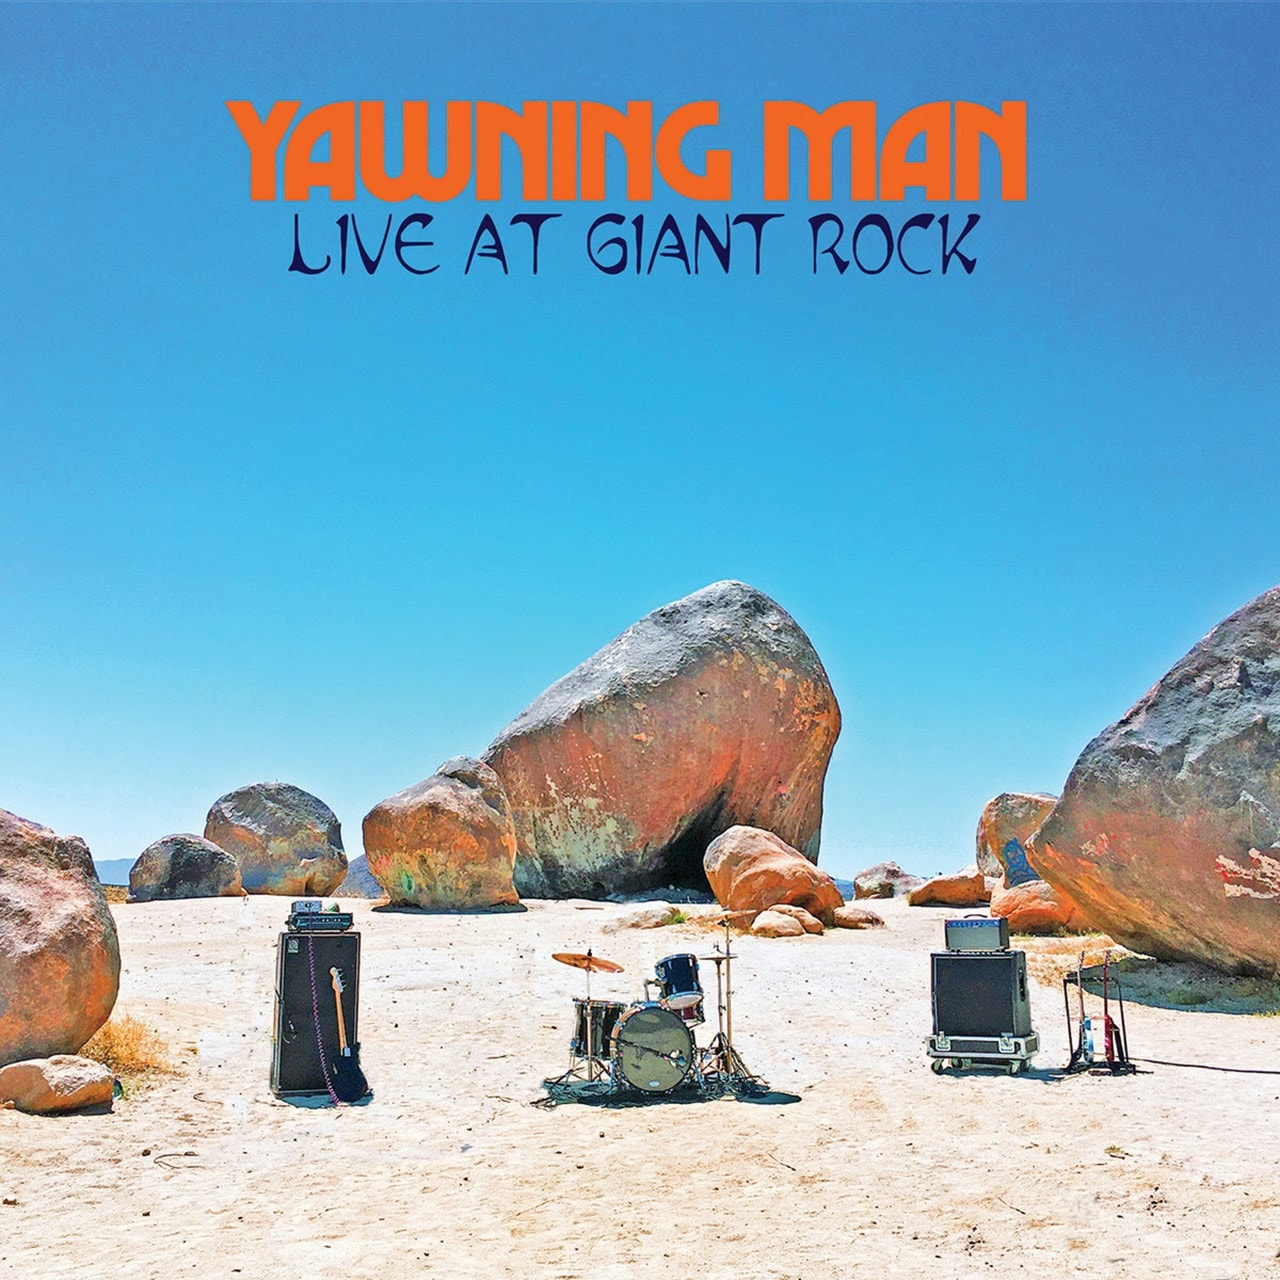 Live at the Giant Rock - 1